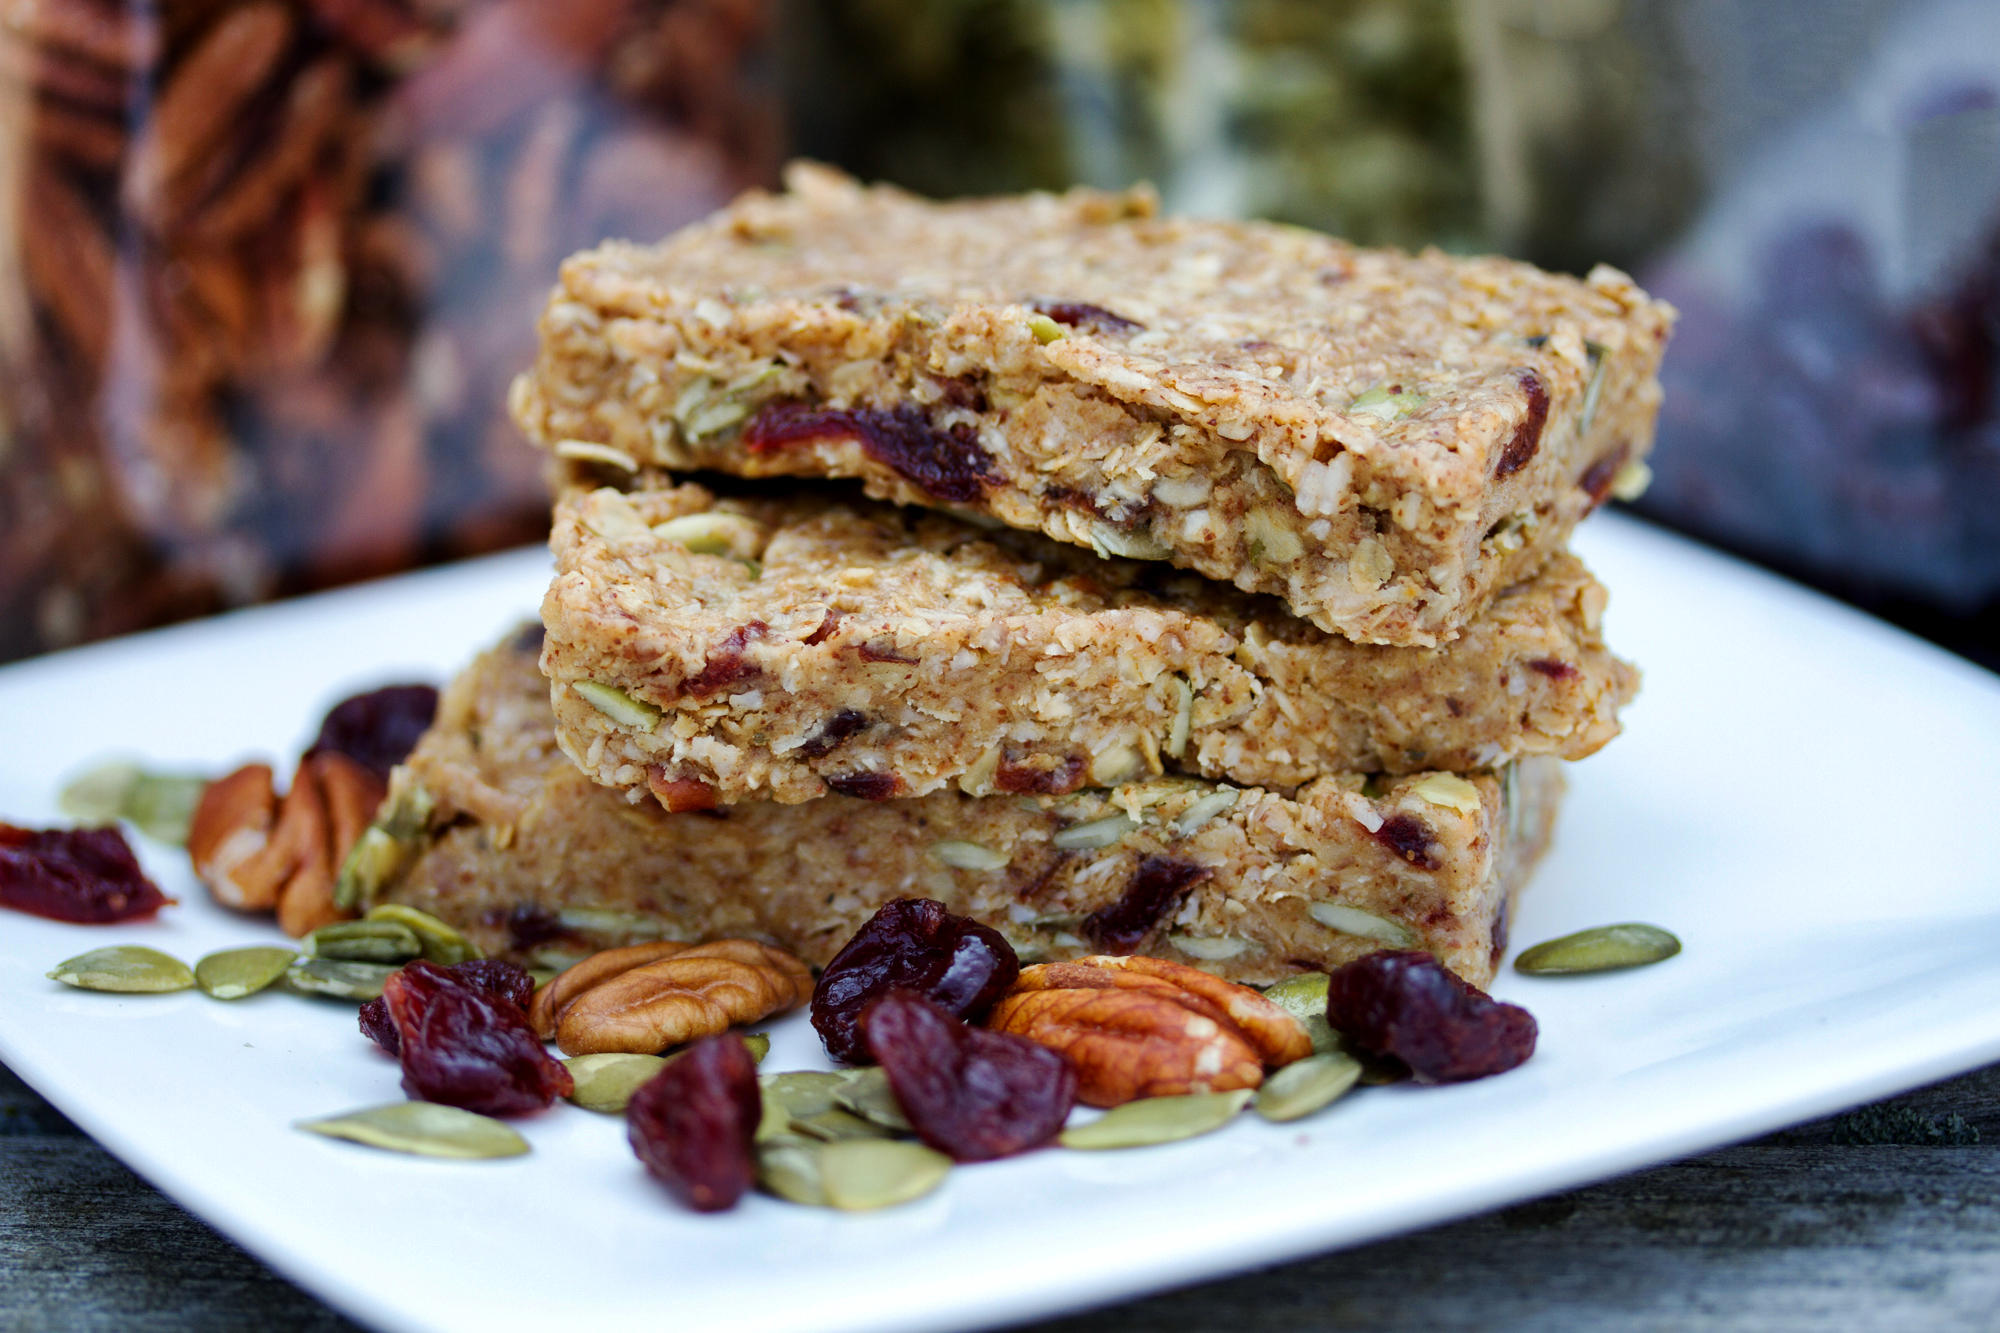 Homemade Granola Bars by Carpe Diem Nutrition